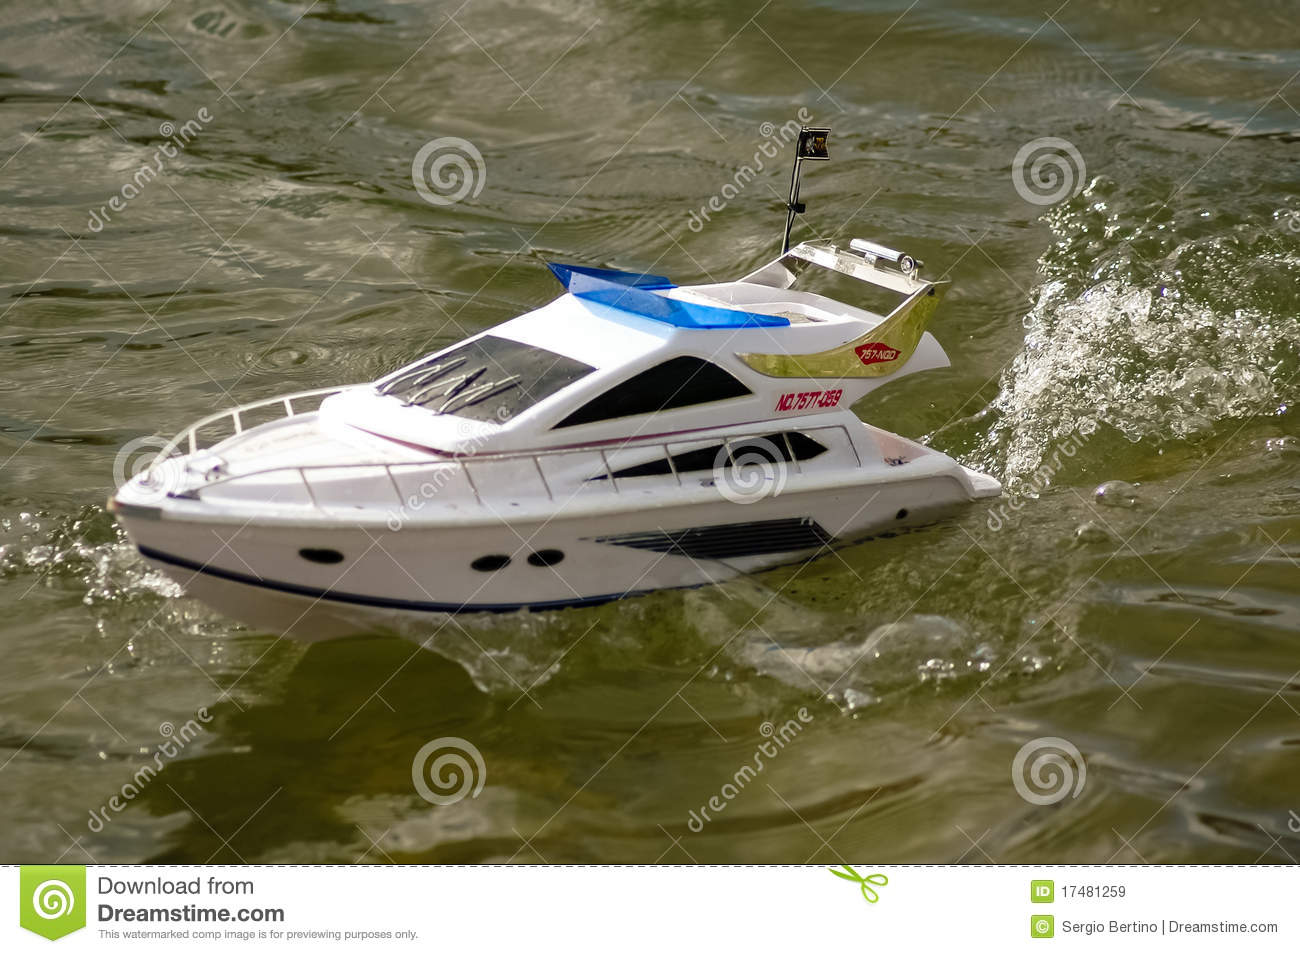 Electric Radiocontrolled Model Boat Royalty Free Stock Images - Image: 17481259